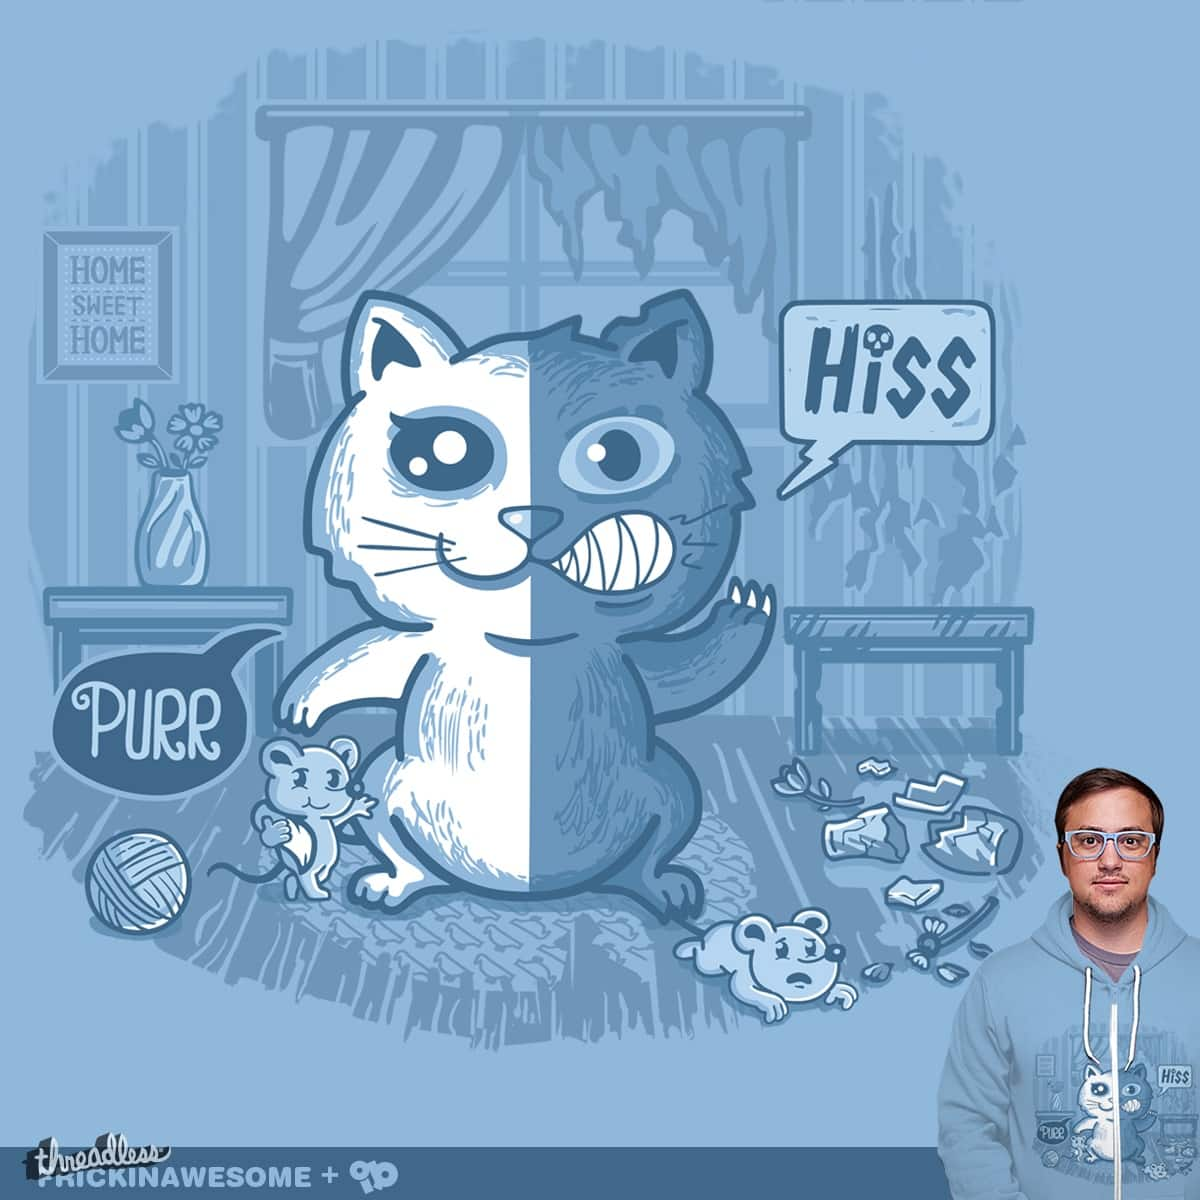 A Tale of Two Kitties by FRICKINAWESOME and ibyes on Threadless